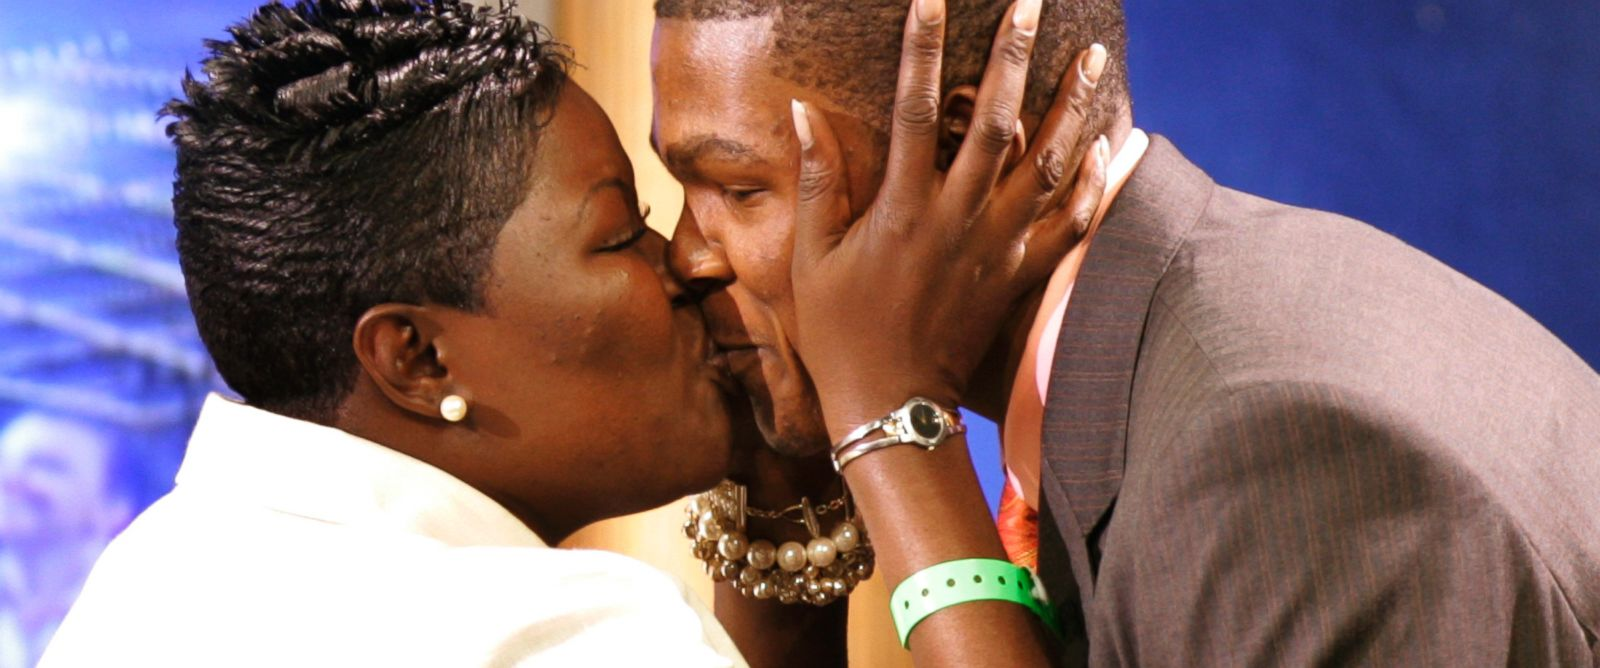 PHOTO: Kevin Durant of the University of Texas kisses his mother after being selected as the second overall pick by the Seattle Supersonics at the 2007 NBA Draft at Madison Square Garden in New York, in this file photo, June 28, 2007.